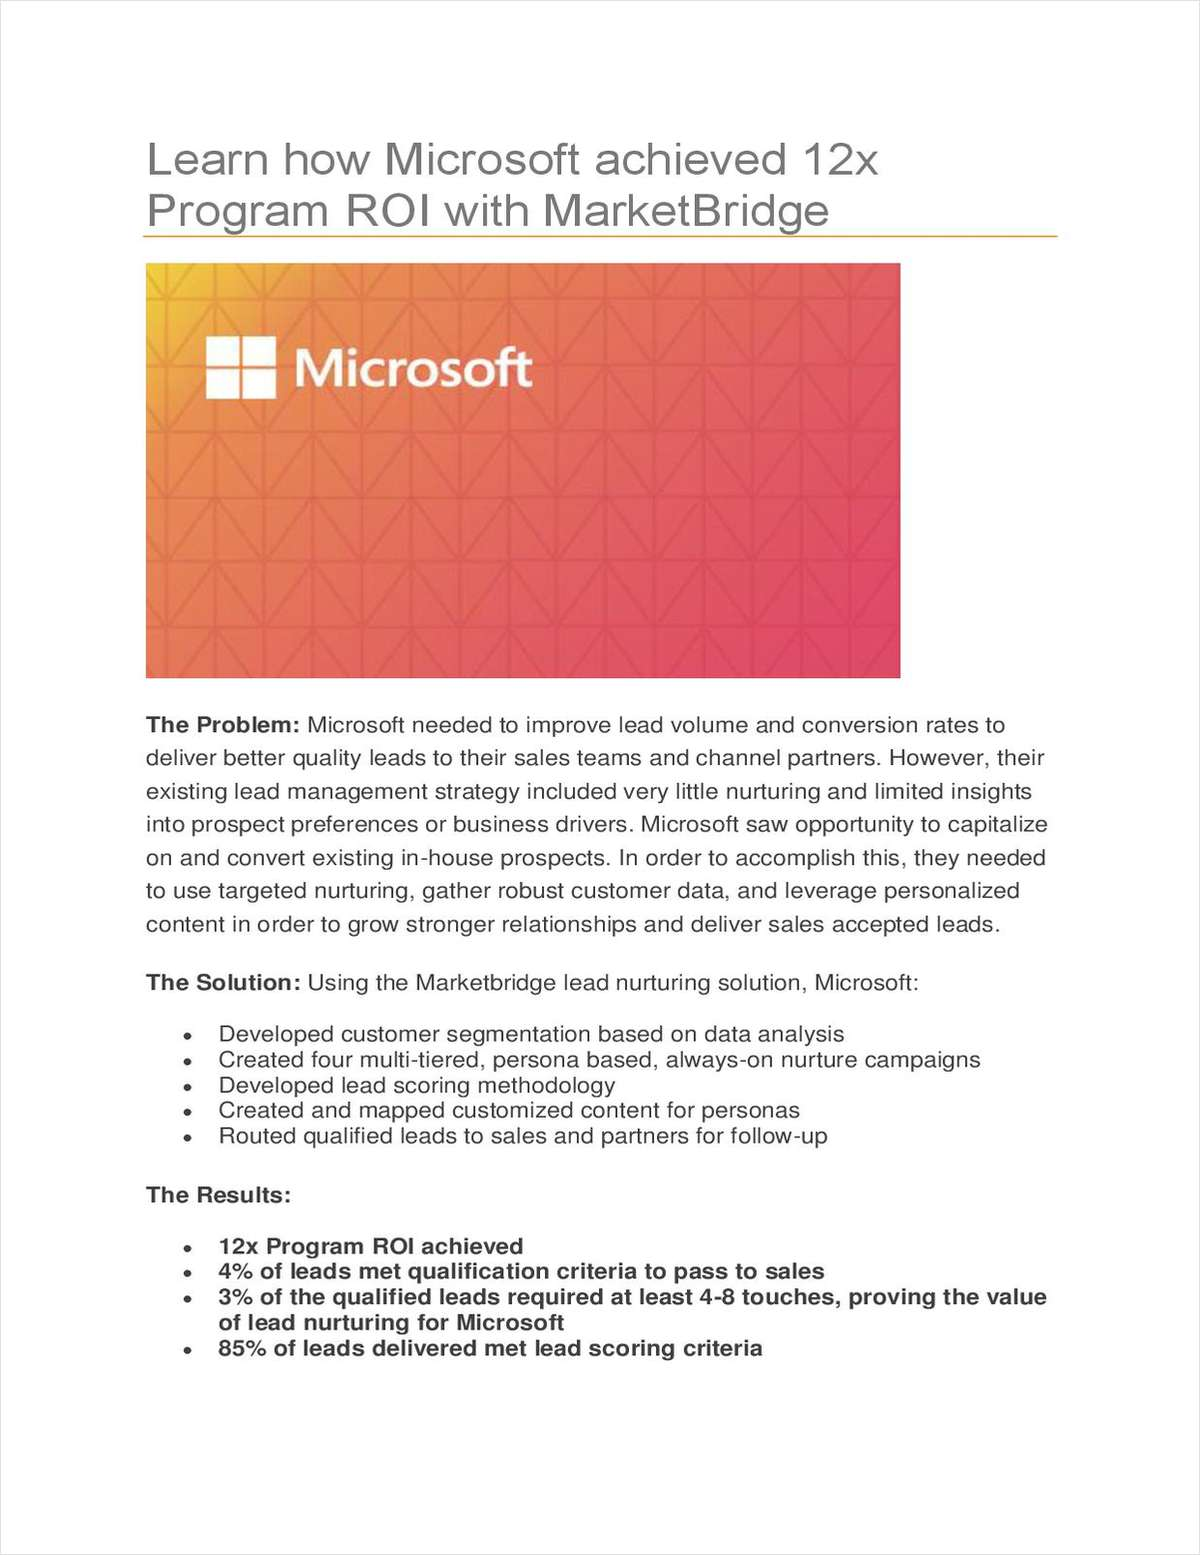 Learn how Microsoft was able to Achieve a 12x Program ROI